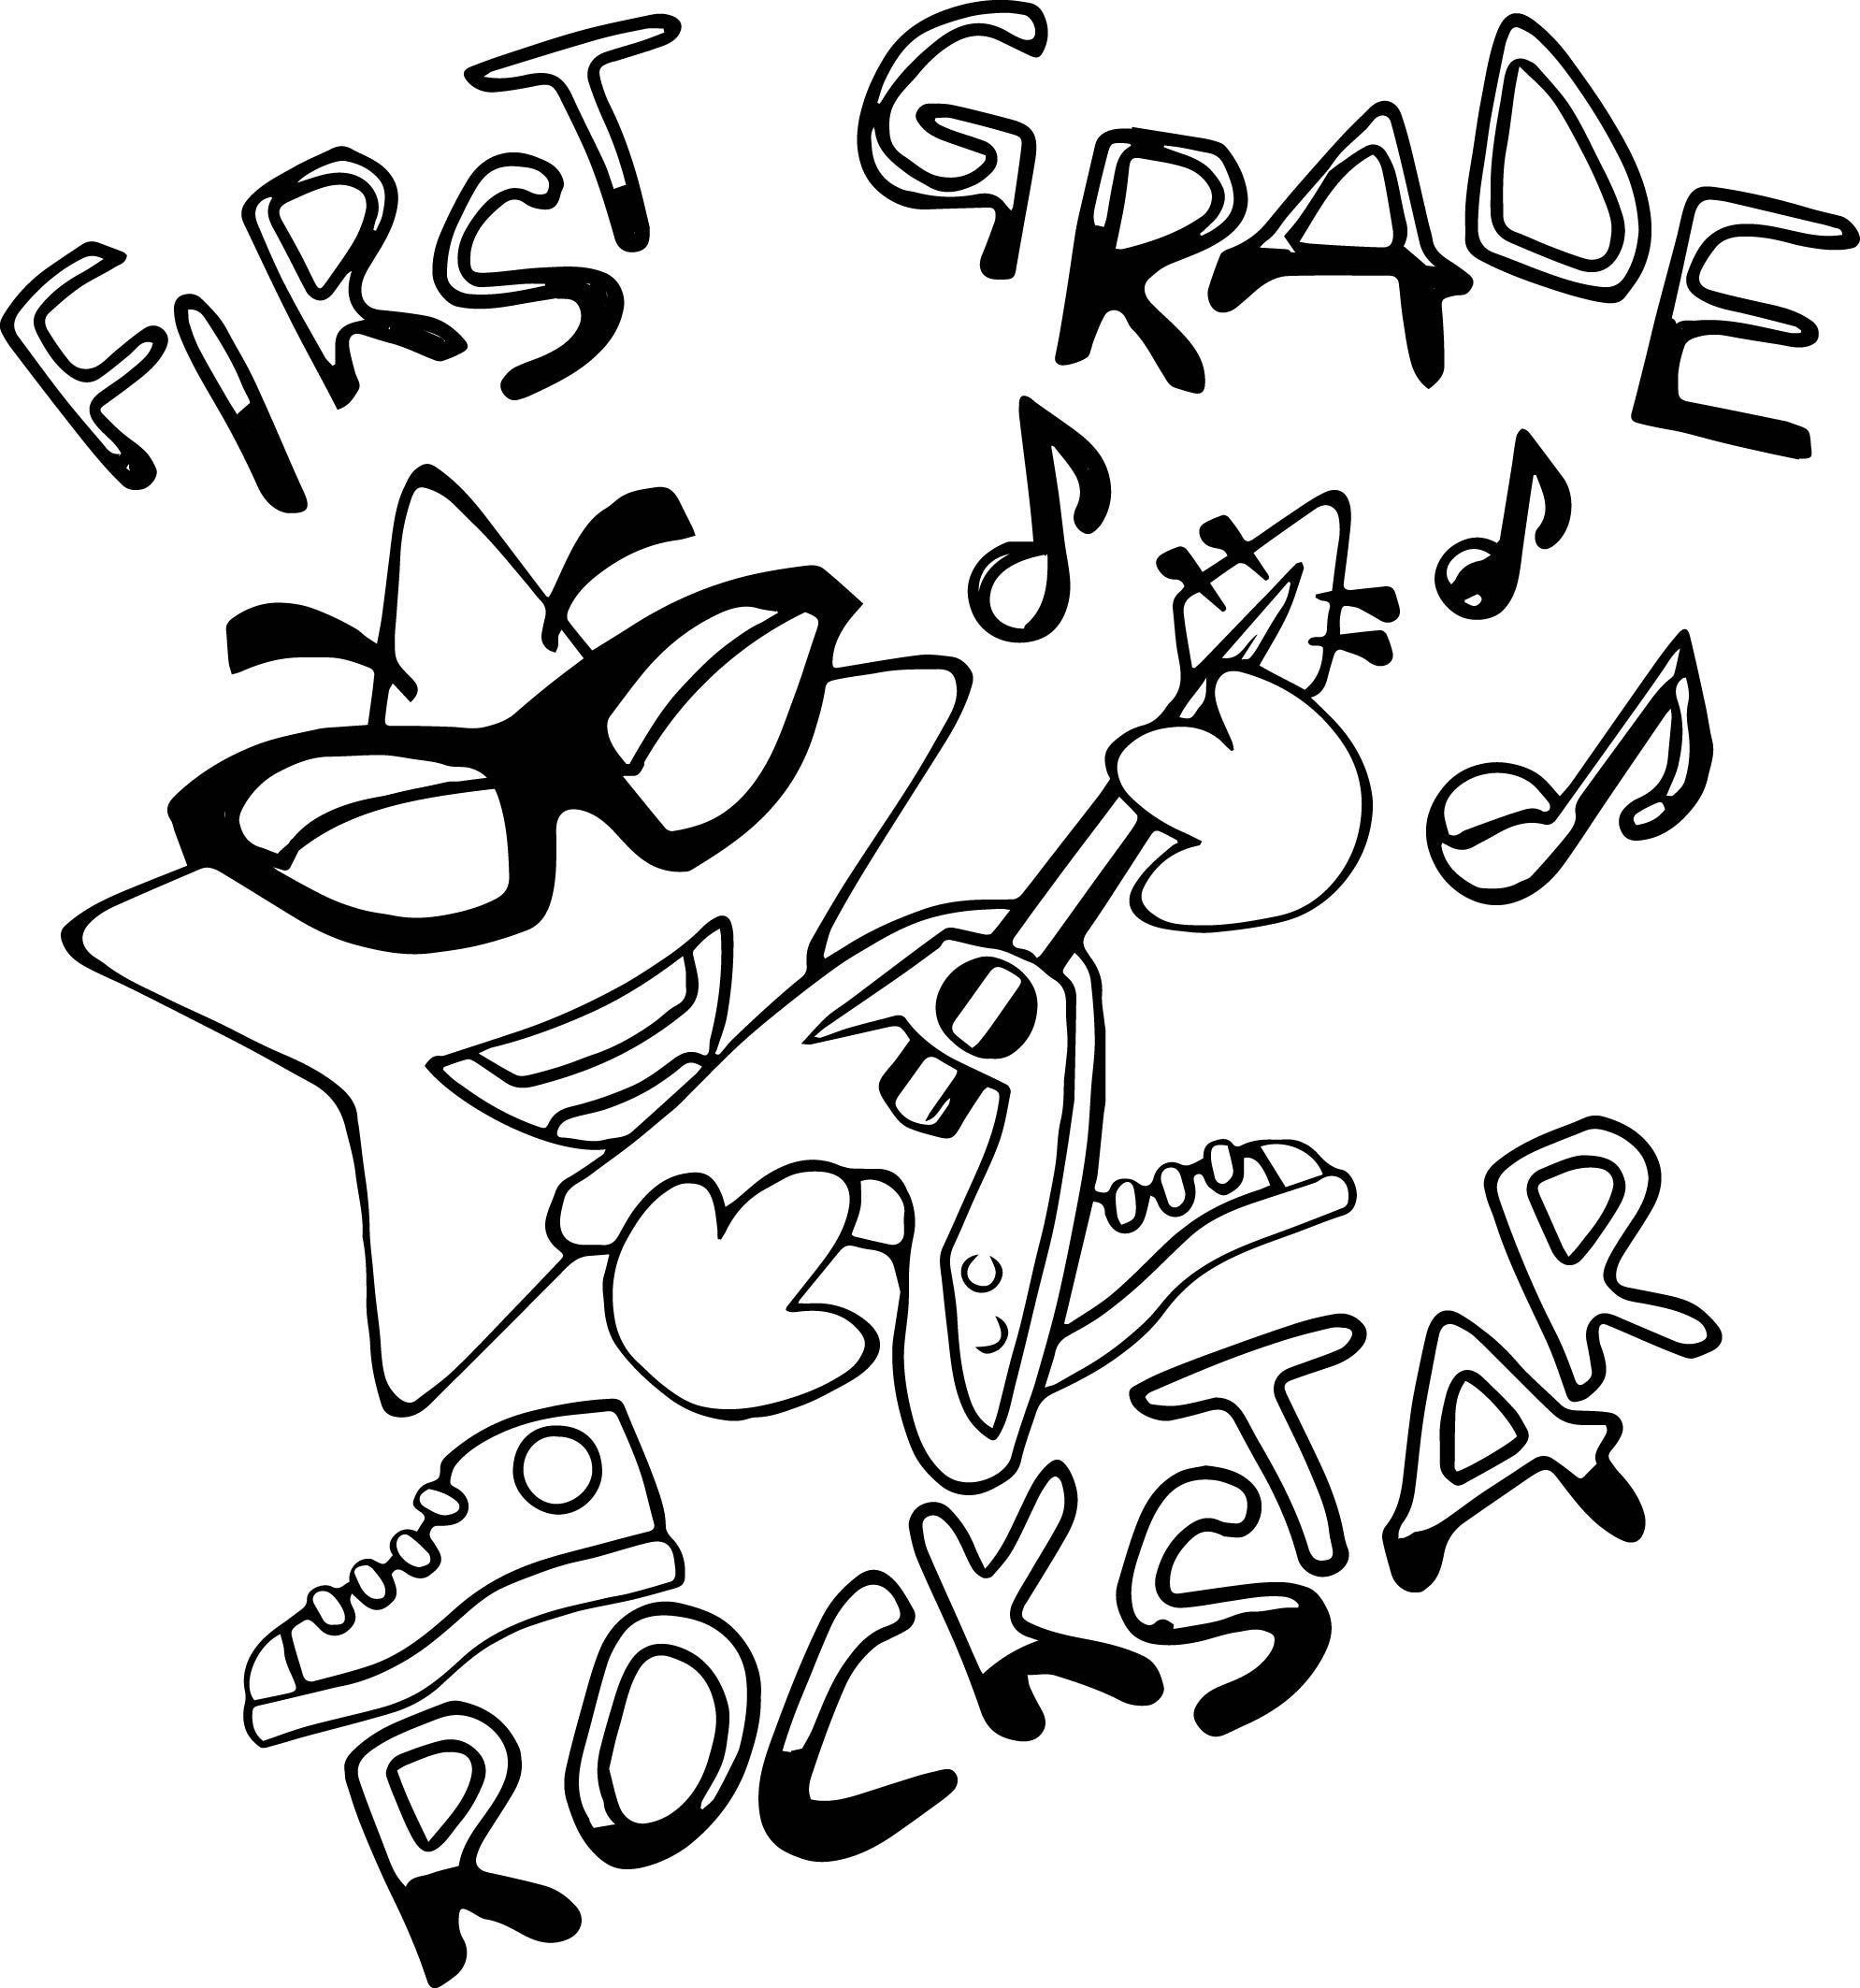 1989x2126 Coloring Pages For Graders Coloring Pages For Graders